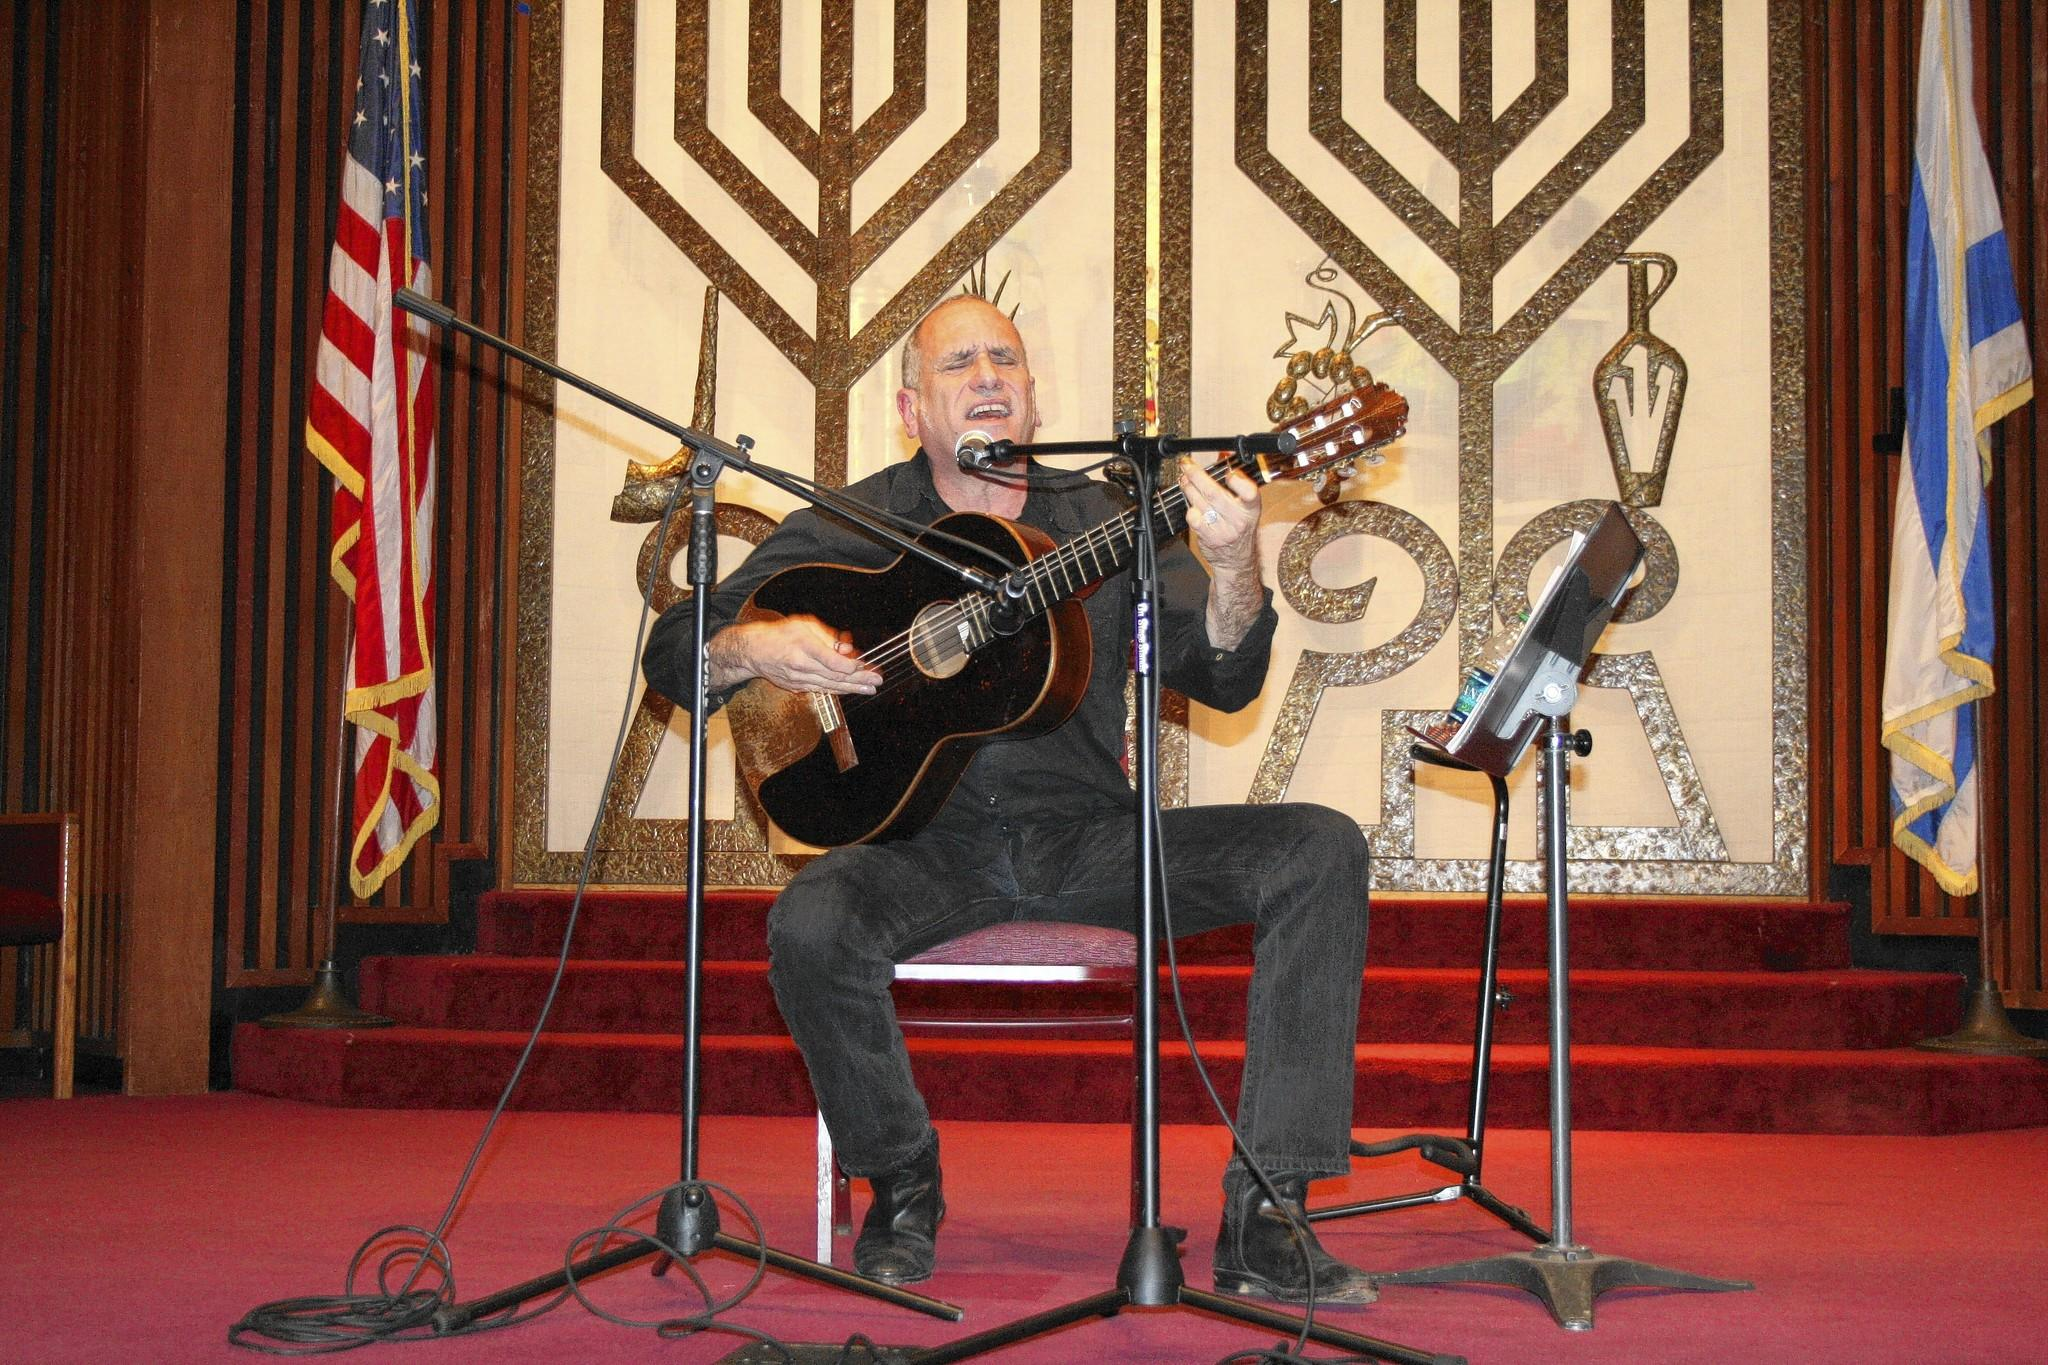 Israeli singer/songwriter David Broza performs at Temple Sinai.